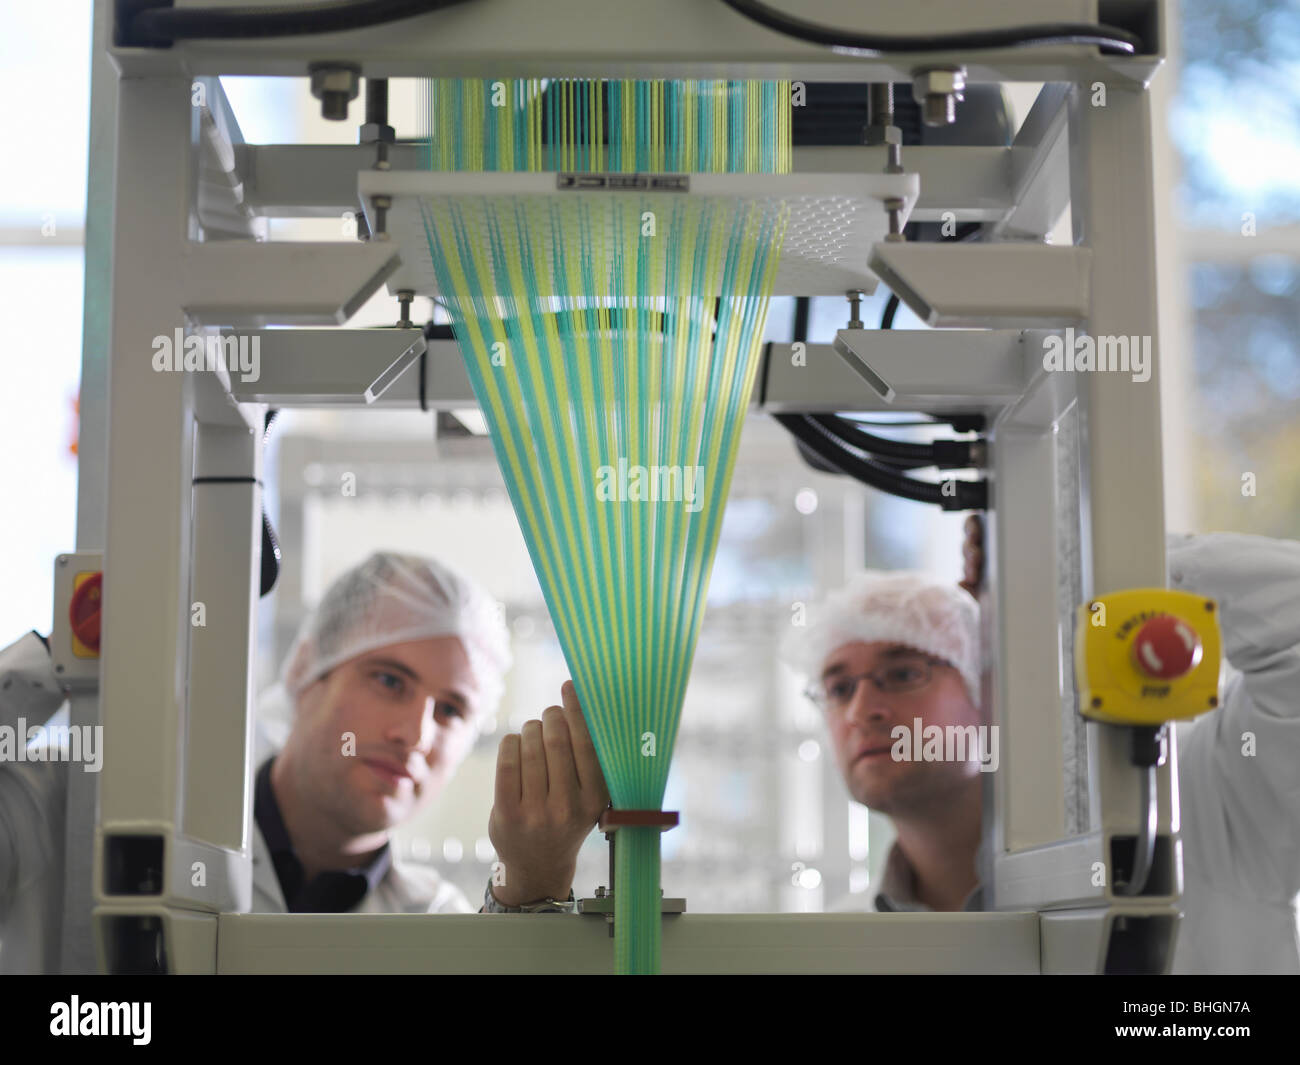 Technicians Weaving Medical Product - Stock Image